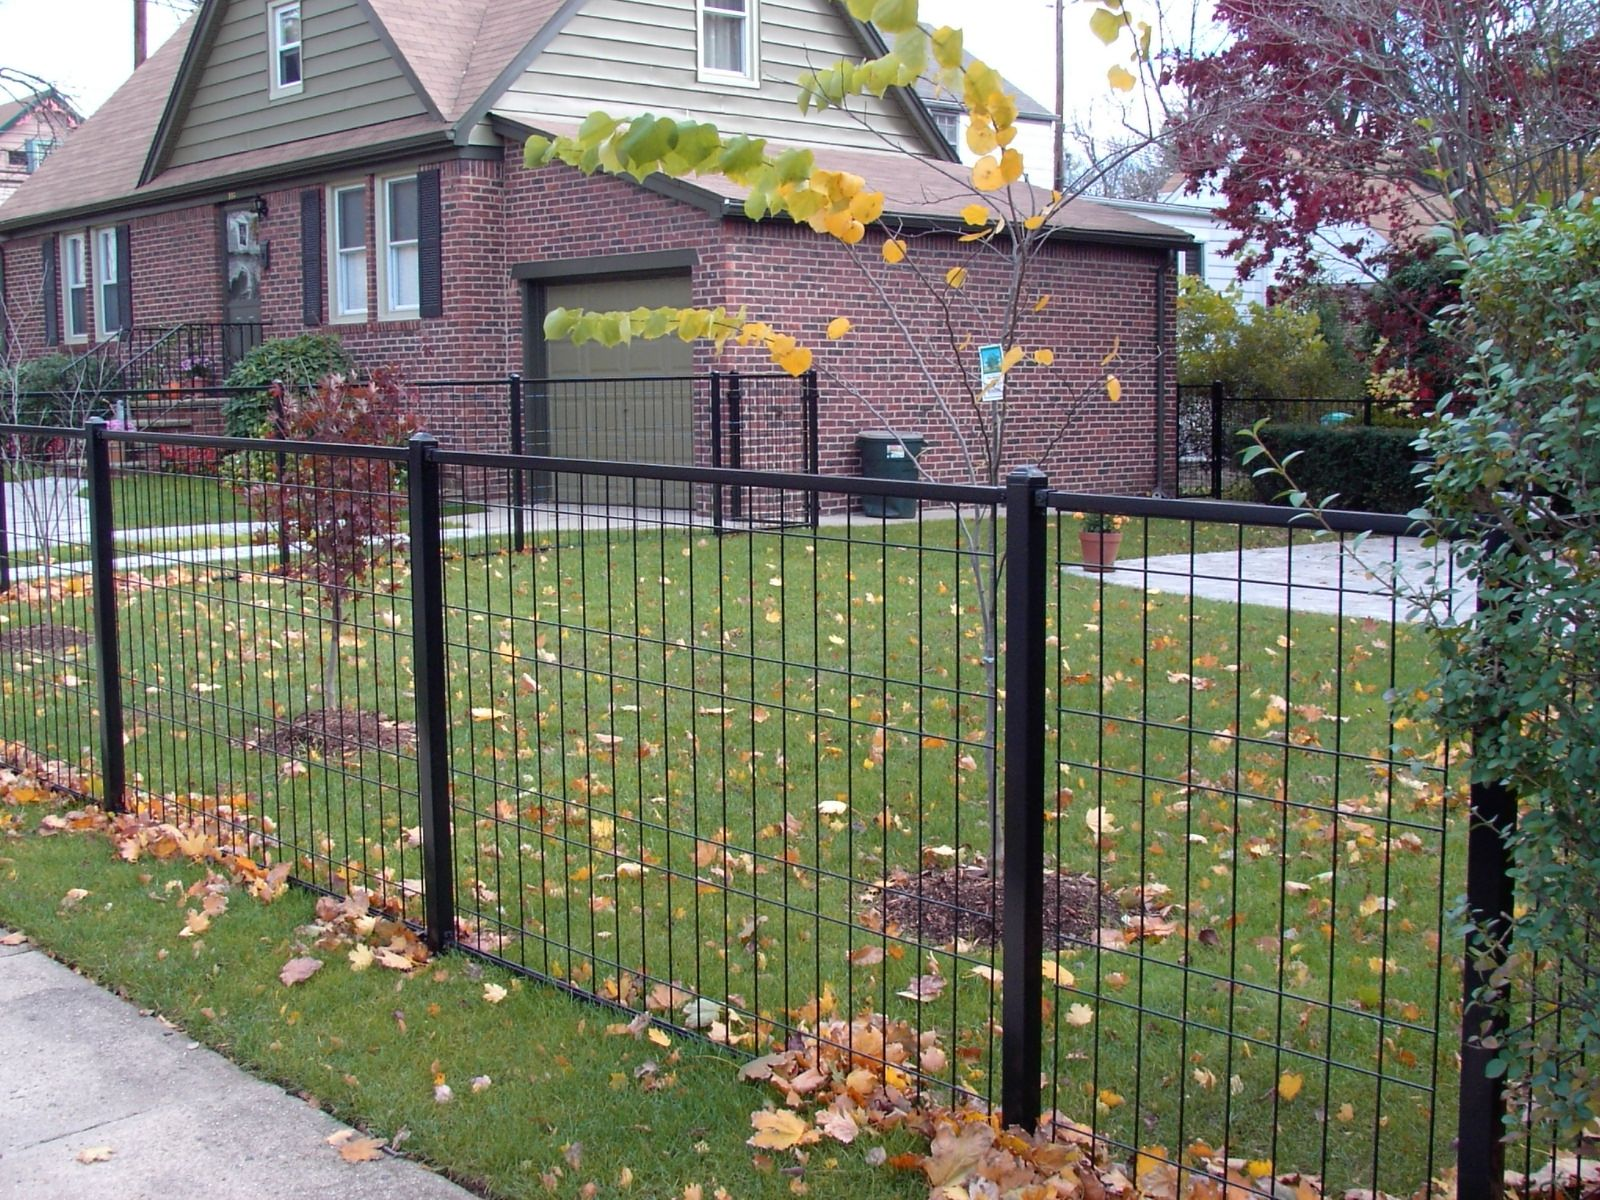 48 High 4 Gauge In Black Welded Wire Fence Front Yard Fence Fence Design